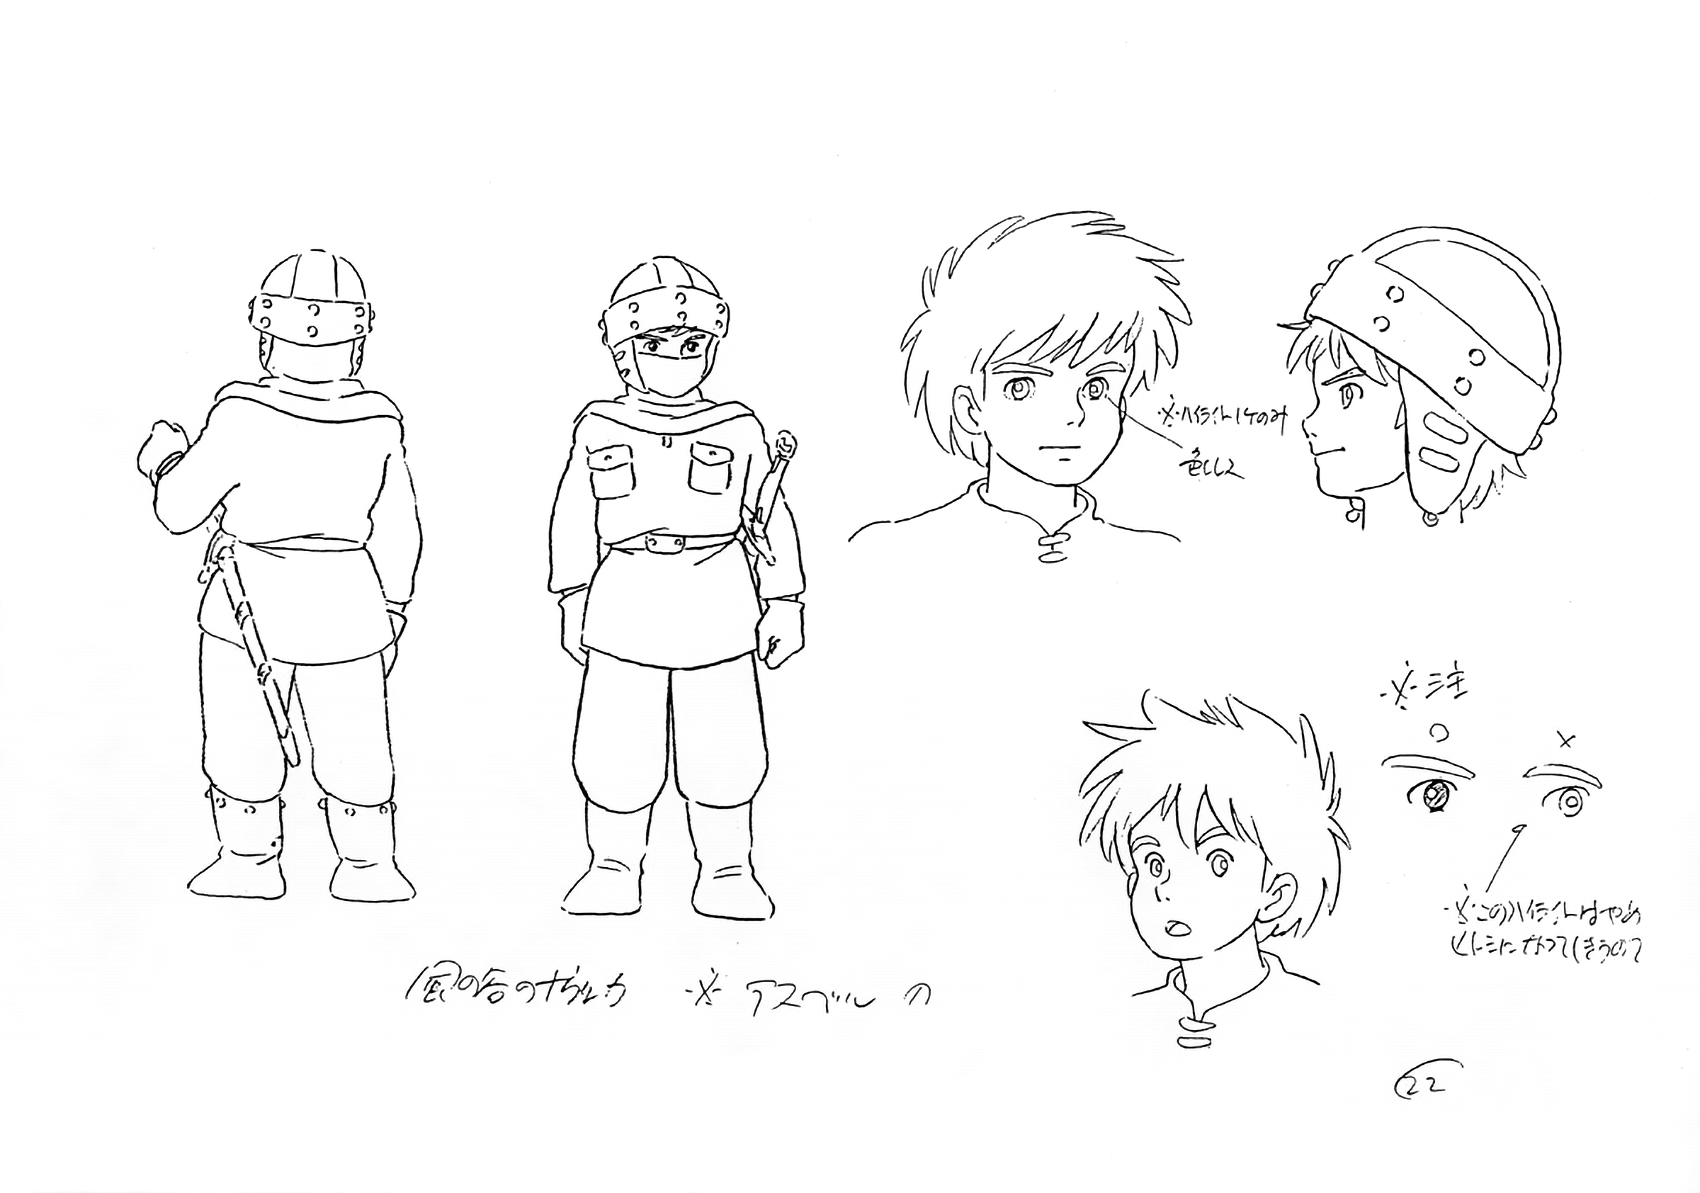 Art of the Nausicaa of the Valley of Wind A - 16.jpg